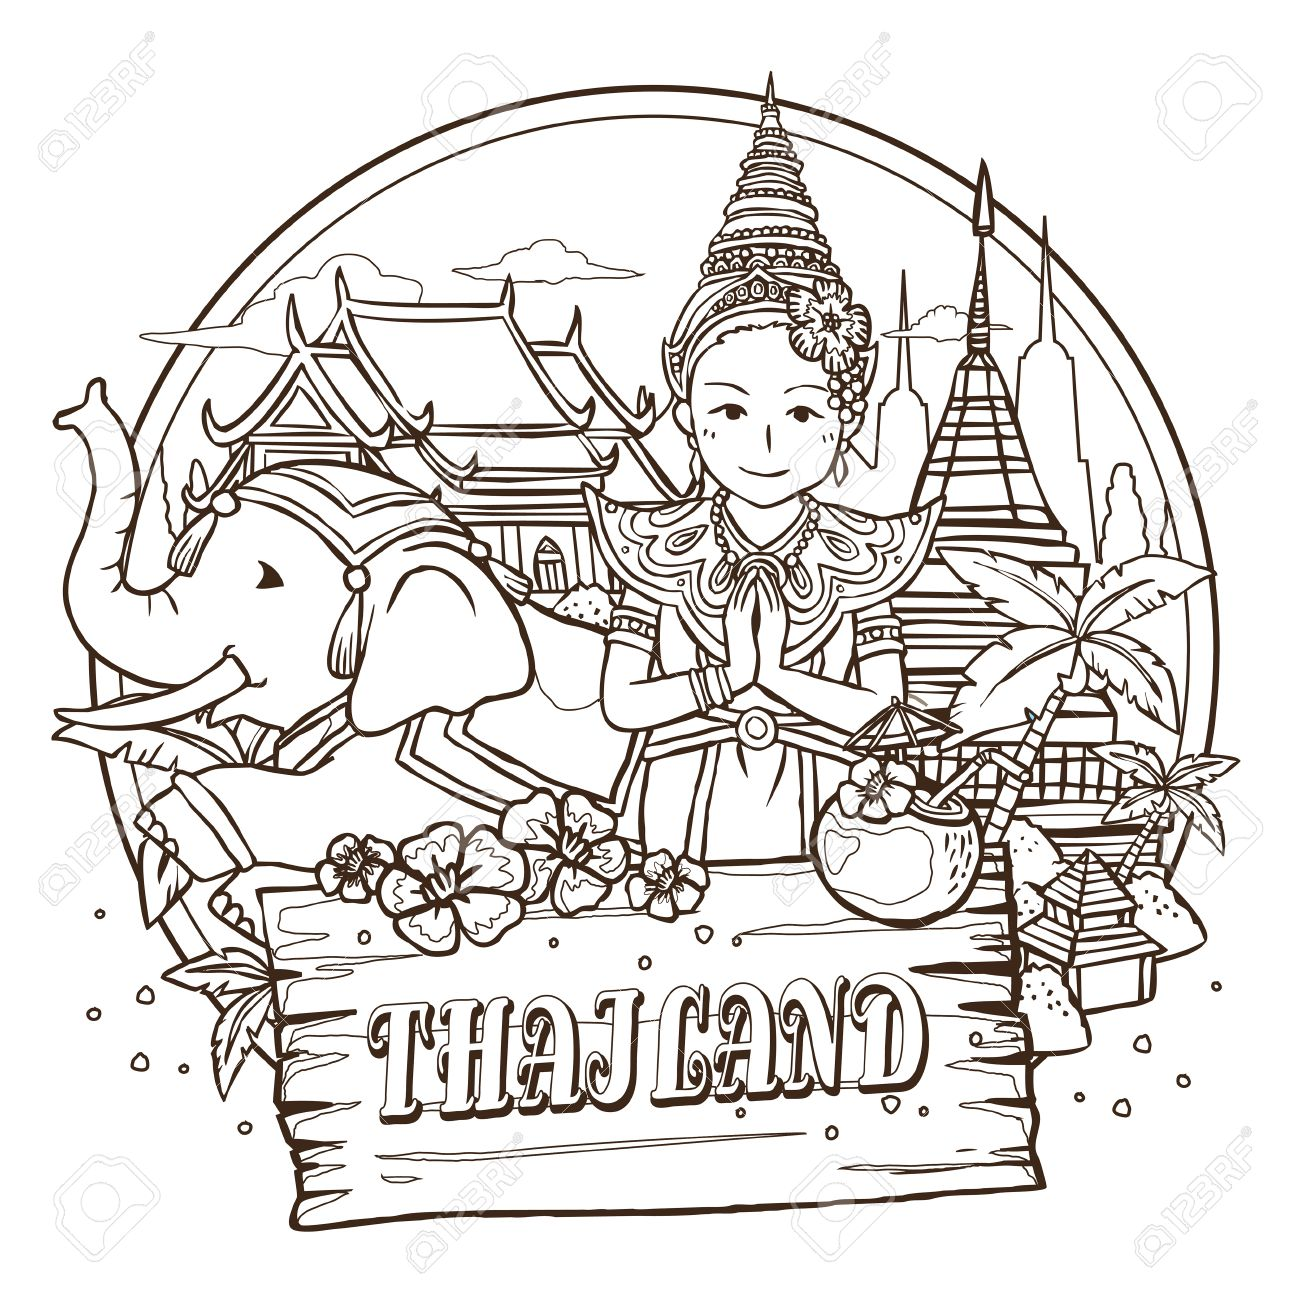 The coloring book tour opener - Best Tour Adorable Thailand Travel Concept Poster In Hand Drawn Style